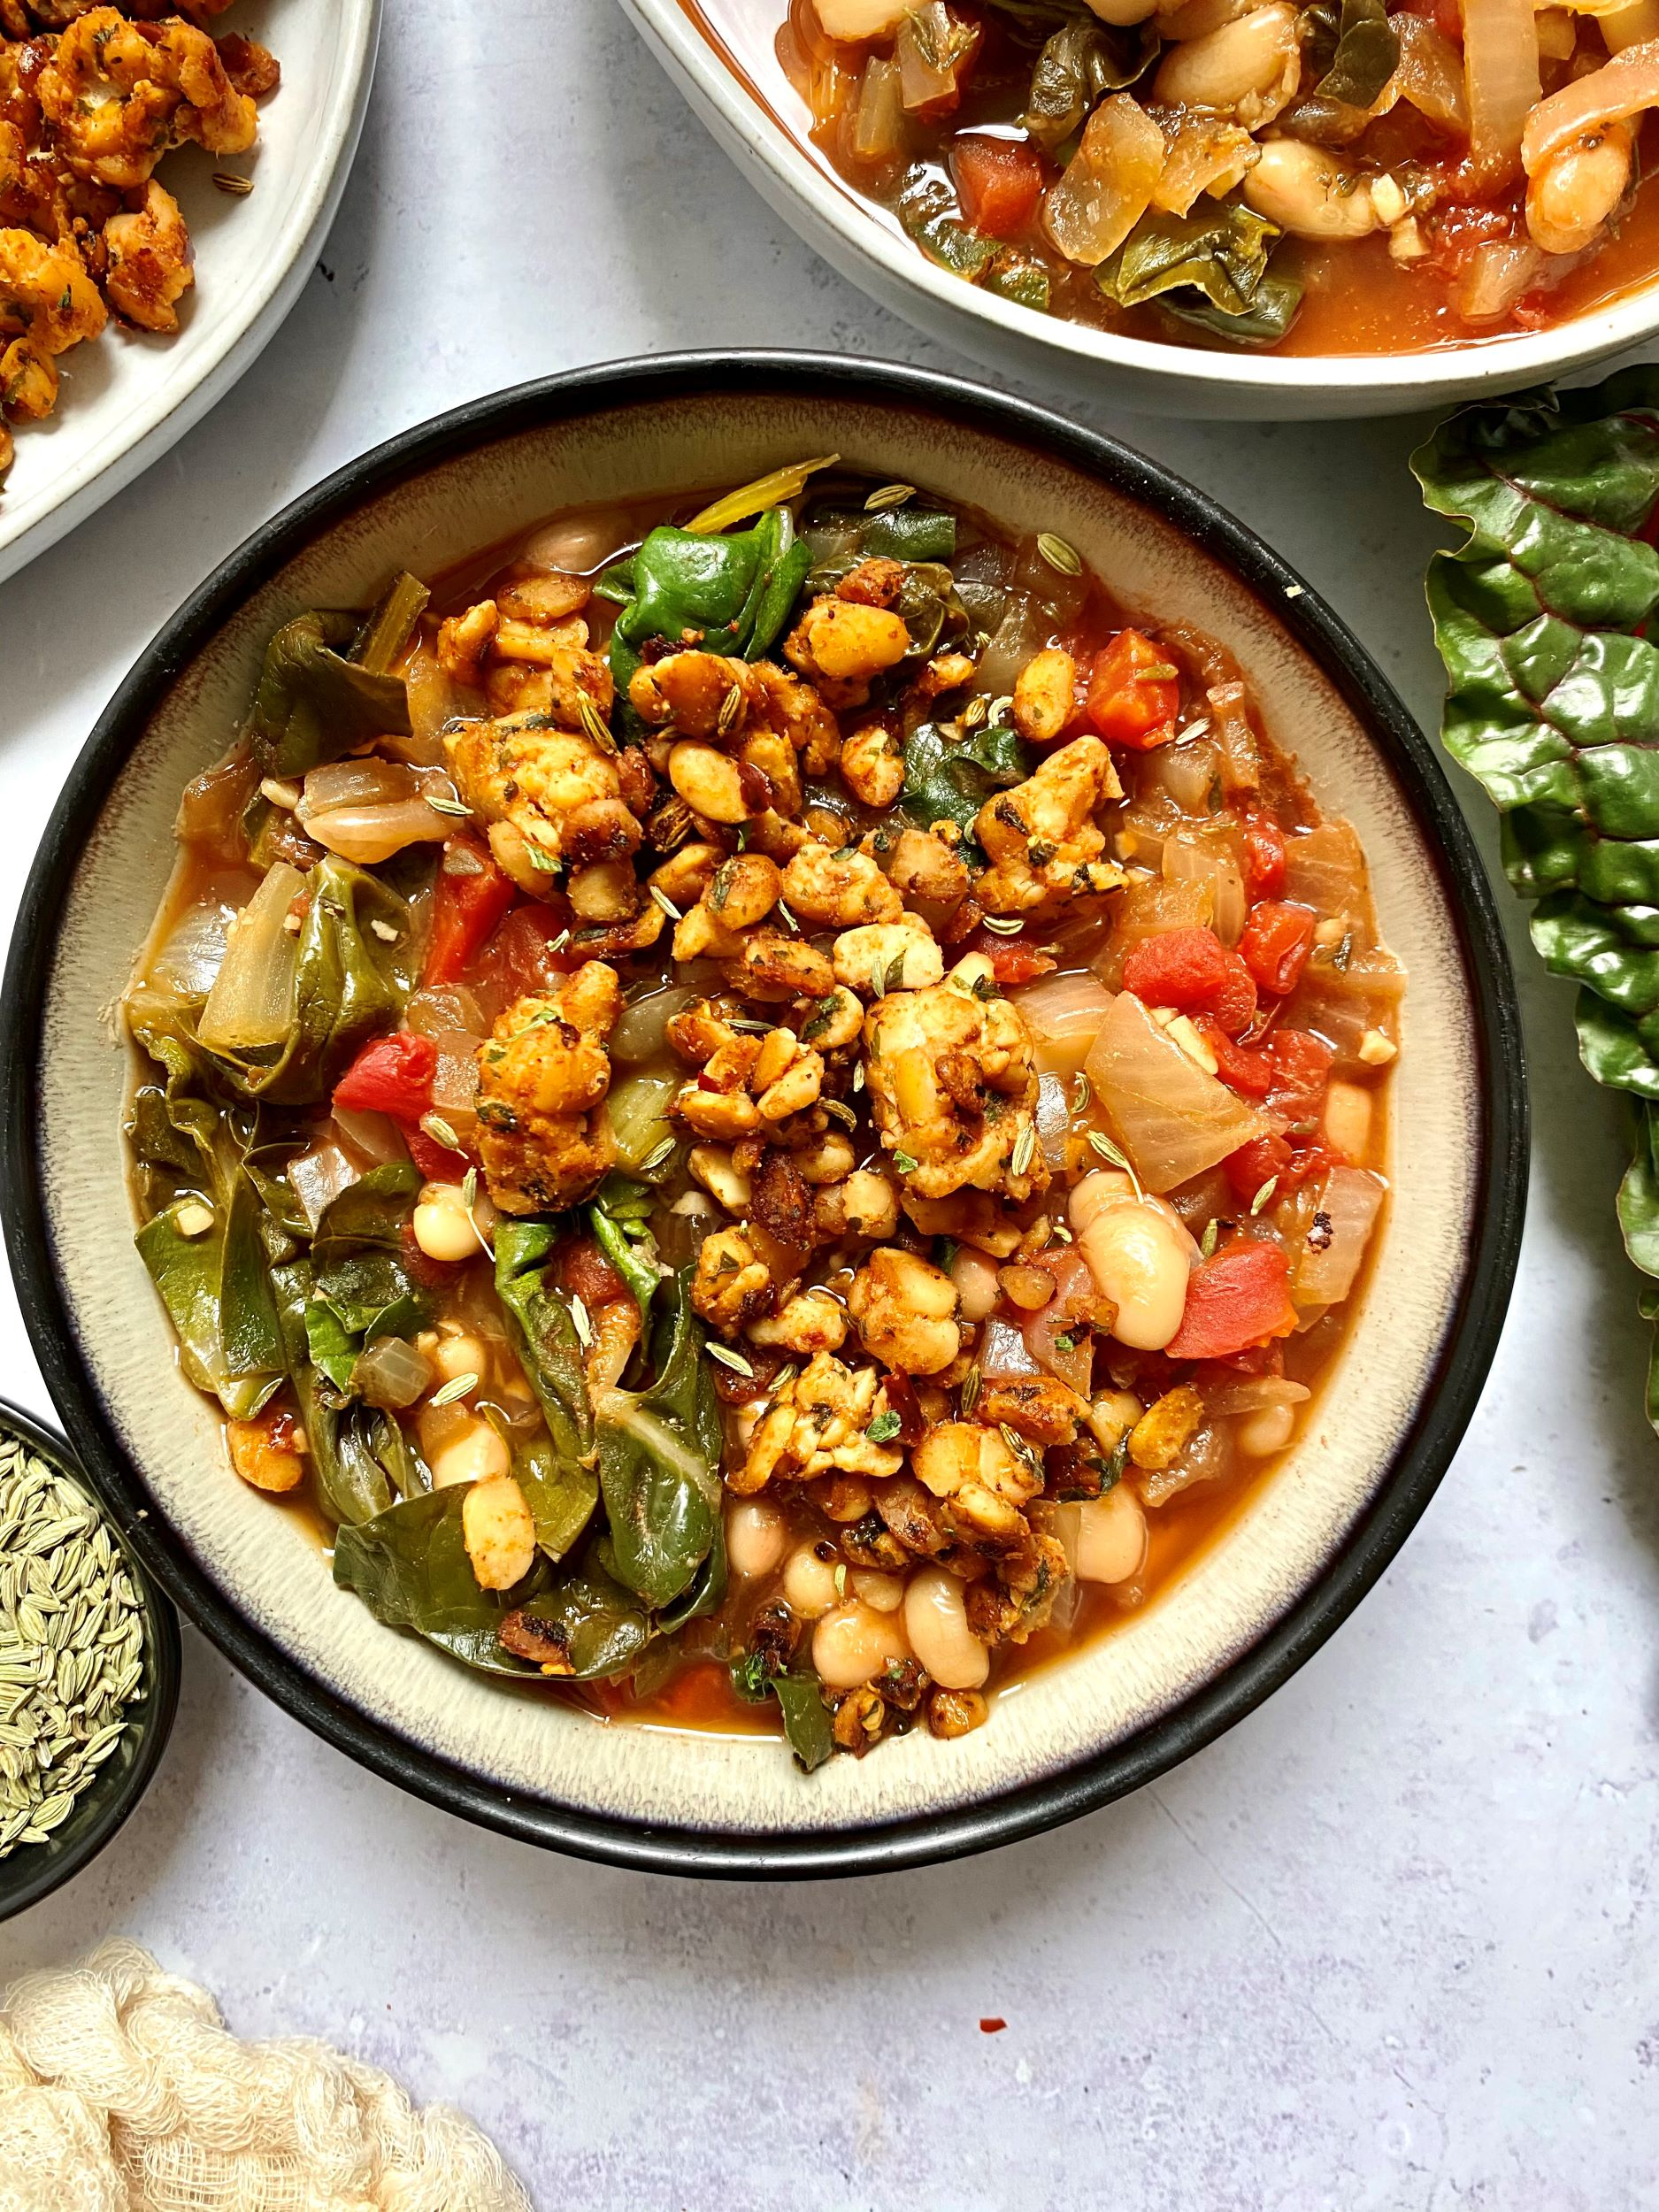 White Beans and Rainbow Chard with Italian Tempeh Sausage